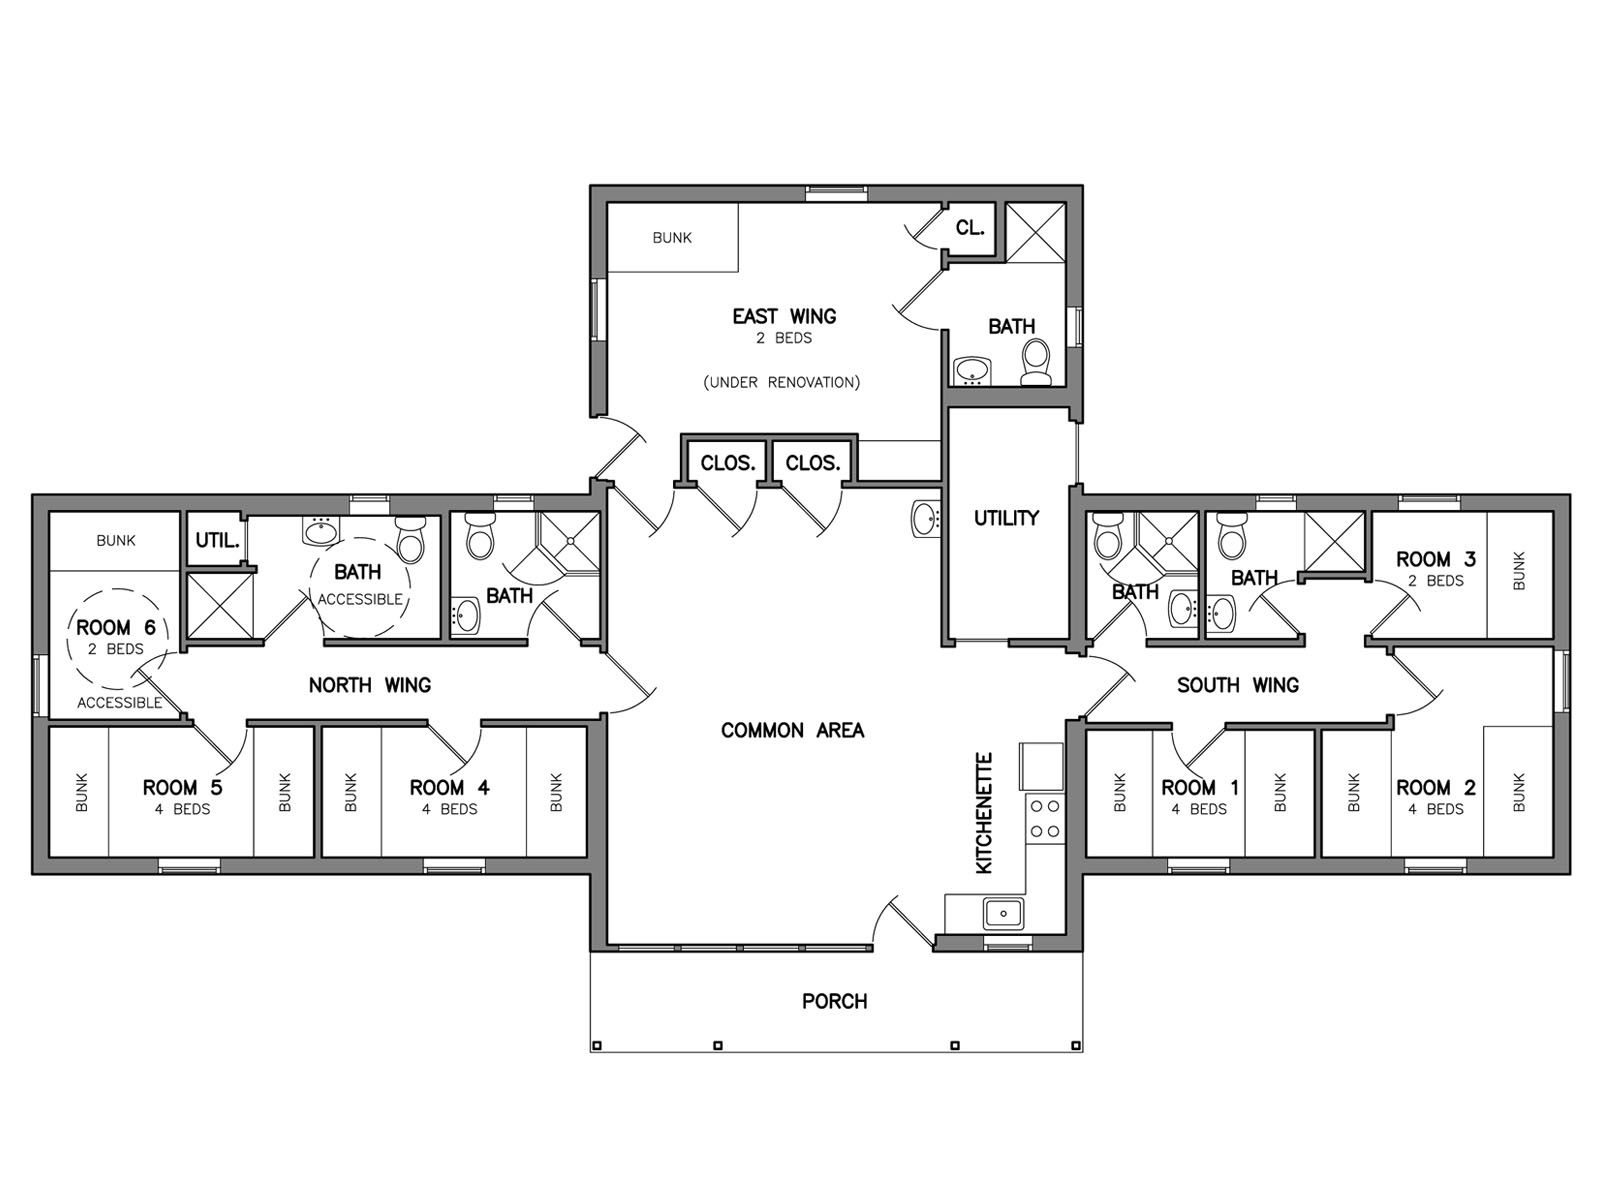 Lodges Johnsonburg Camp Conference Center Floor Plans Guest House Plans Lodges Design